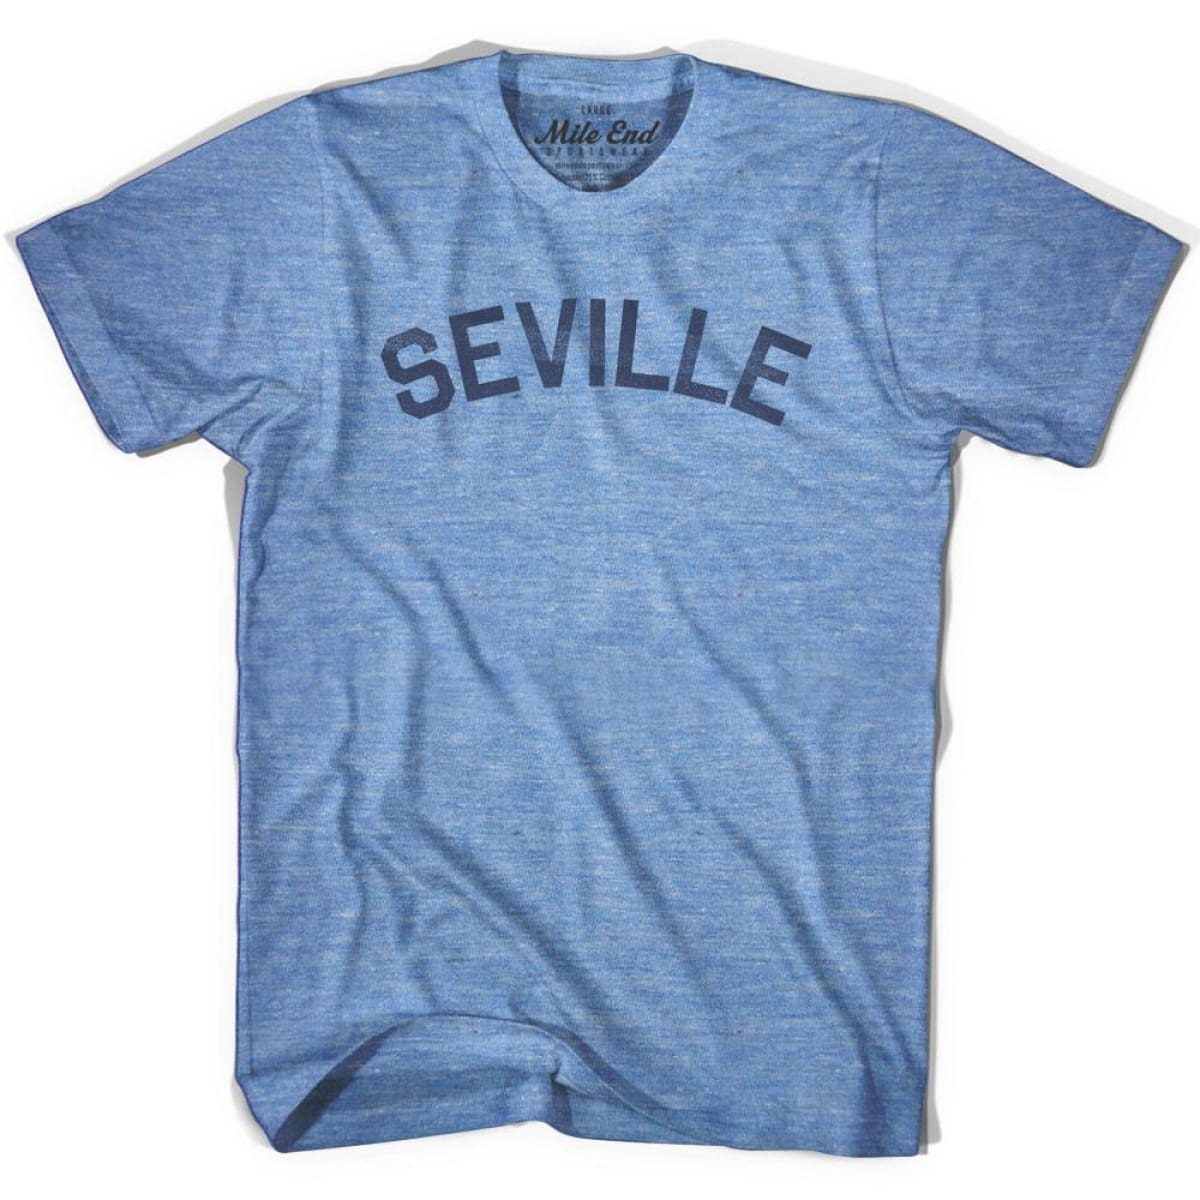 Seville City Vintage T-shirt - Athletic Blue / Adult X-Small - Mile End City